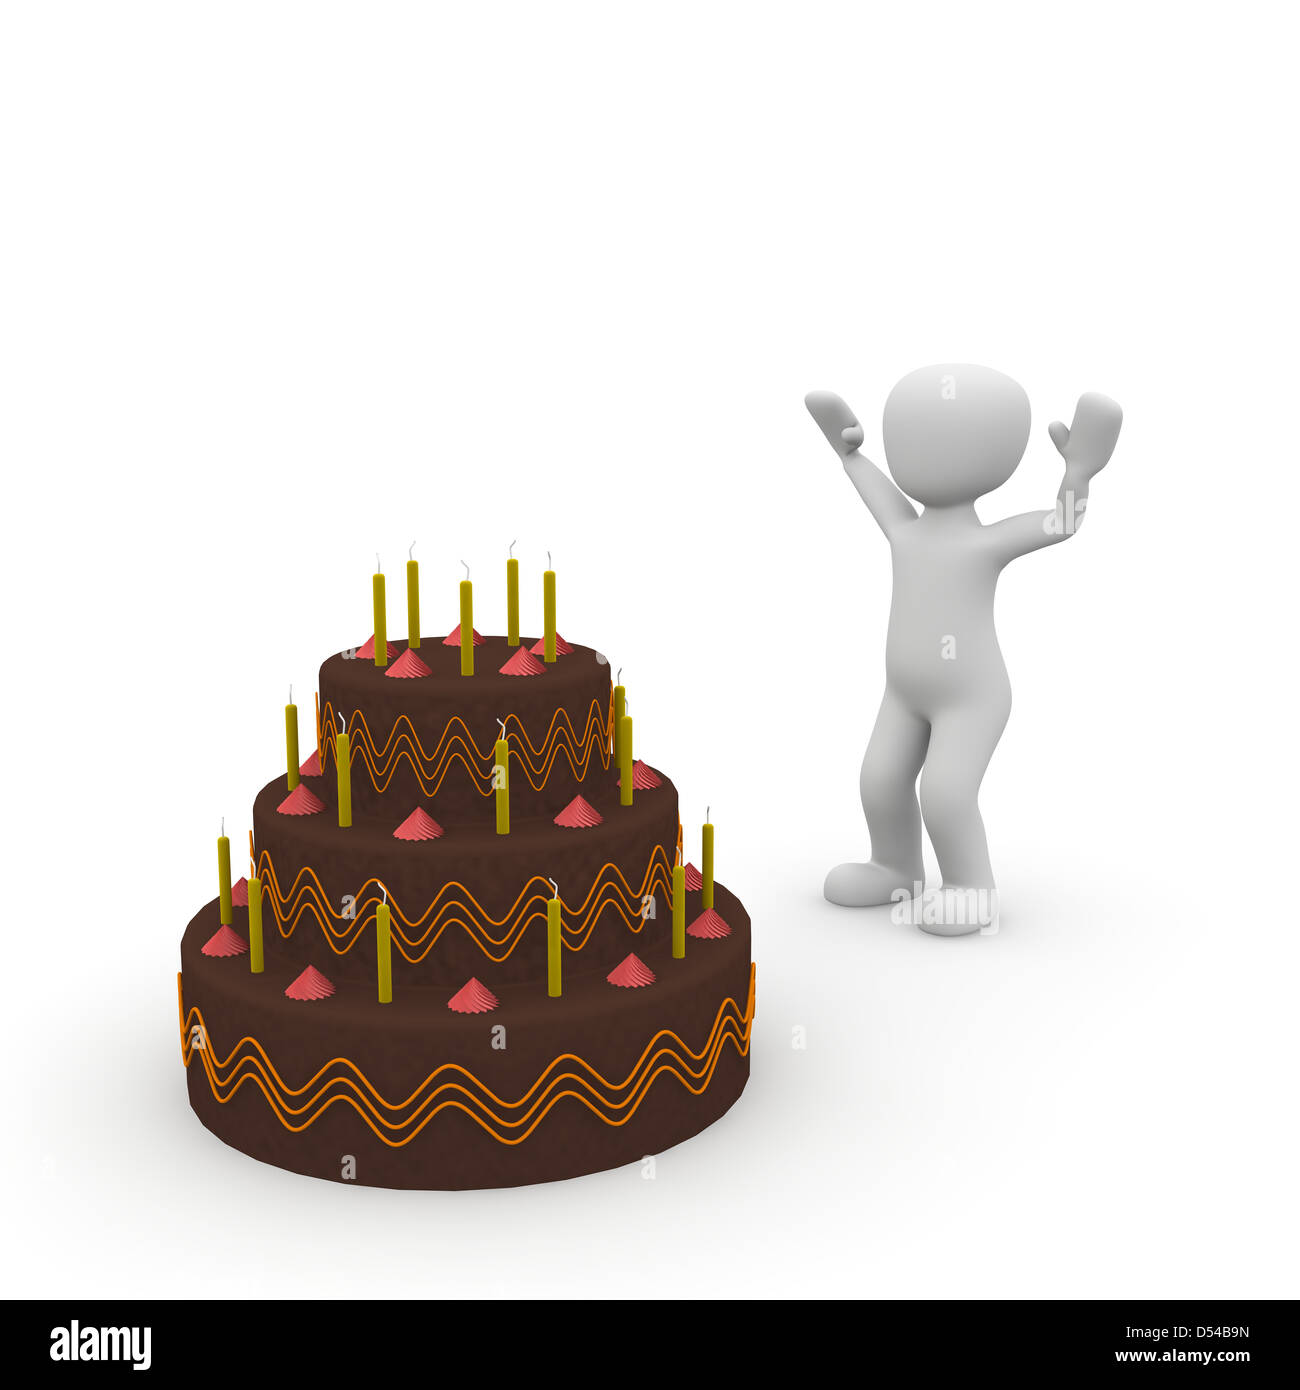 Enjoyable A Huge Birthday Cake Made Of Chocolate Is Delicious Stock Photo Funny Birthday Cards Online Alyptdamsfinfo